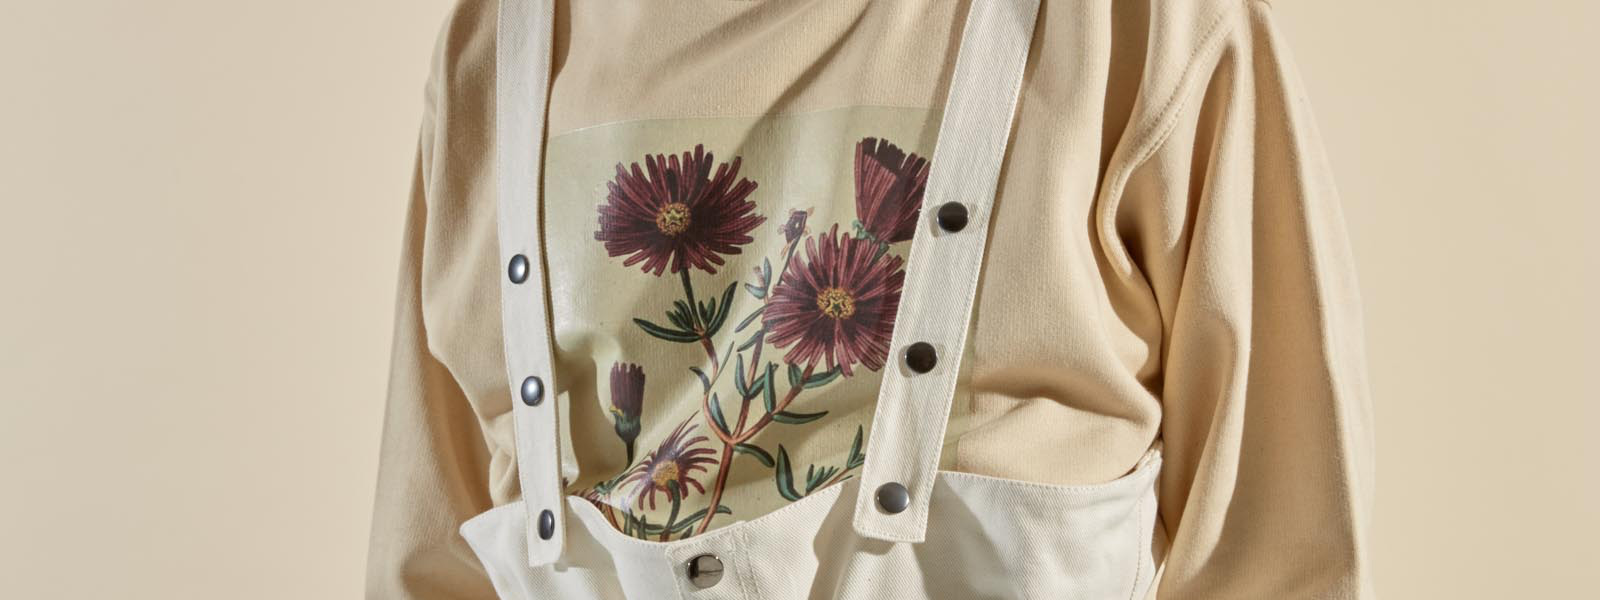 Prints and Embroidery: Wear Flowers